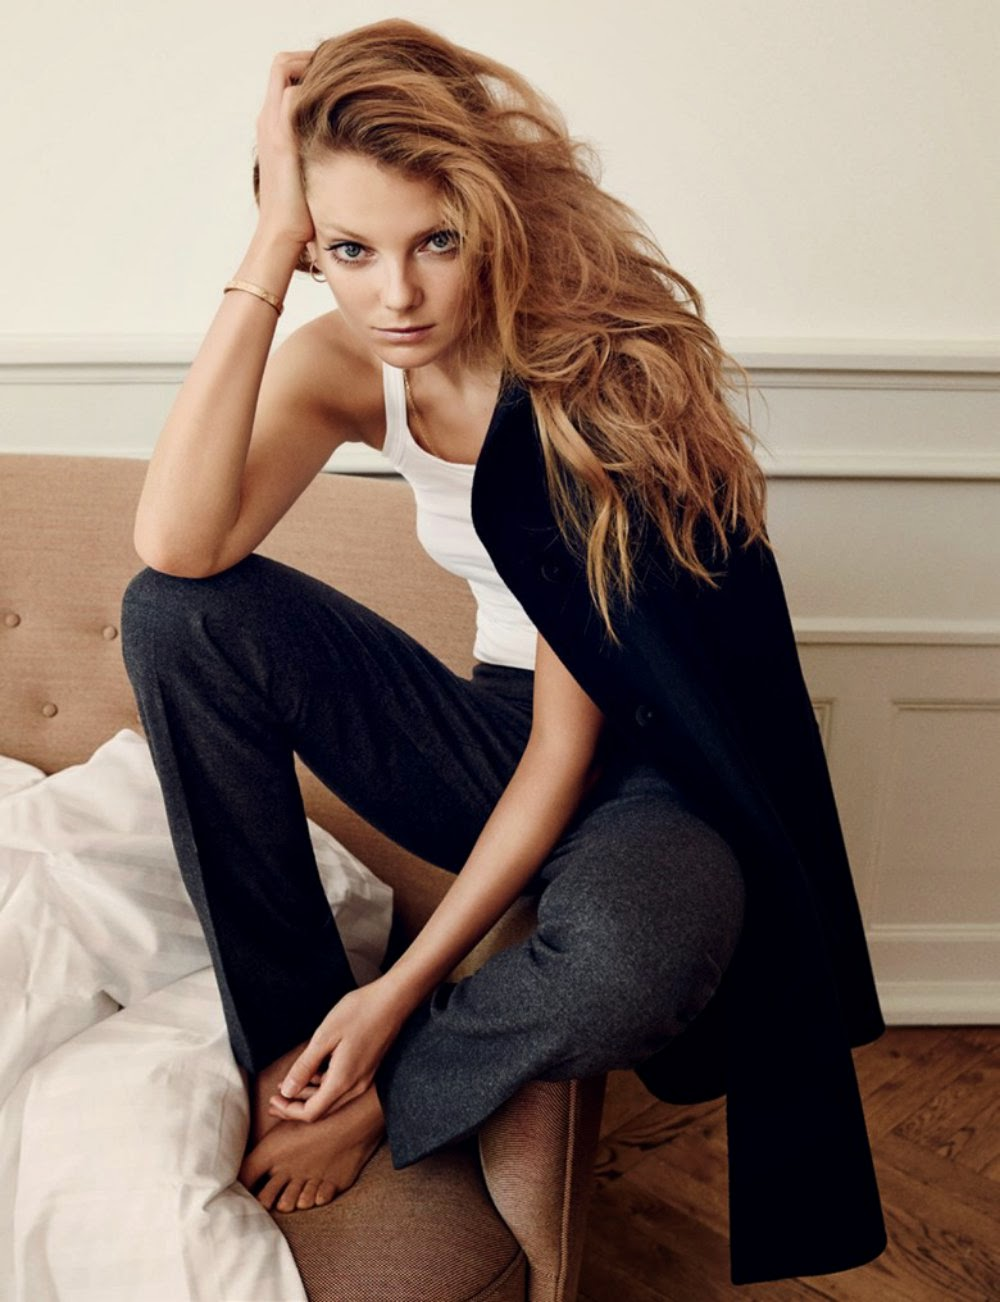 Style-Inspiration-Blog-Fashion-Editorial-Eniko-Mihalik-By-Hasse-Nielsen-For-Cover-Denmark-September-2014-6